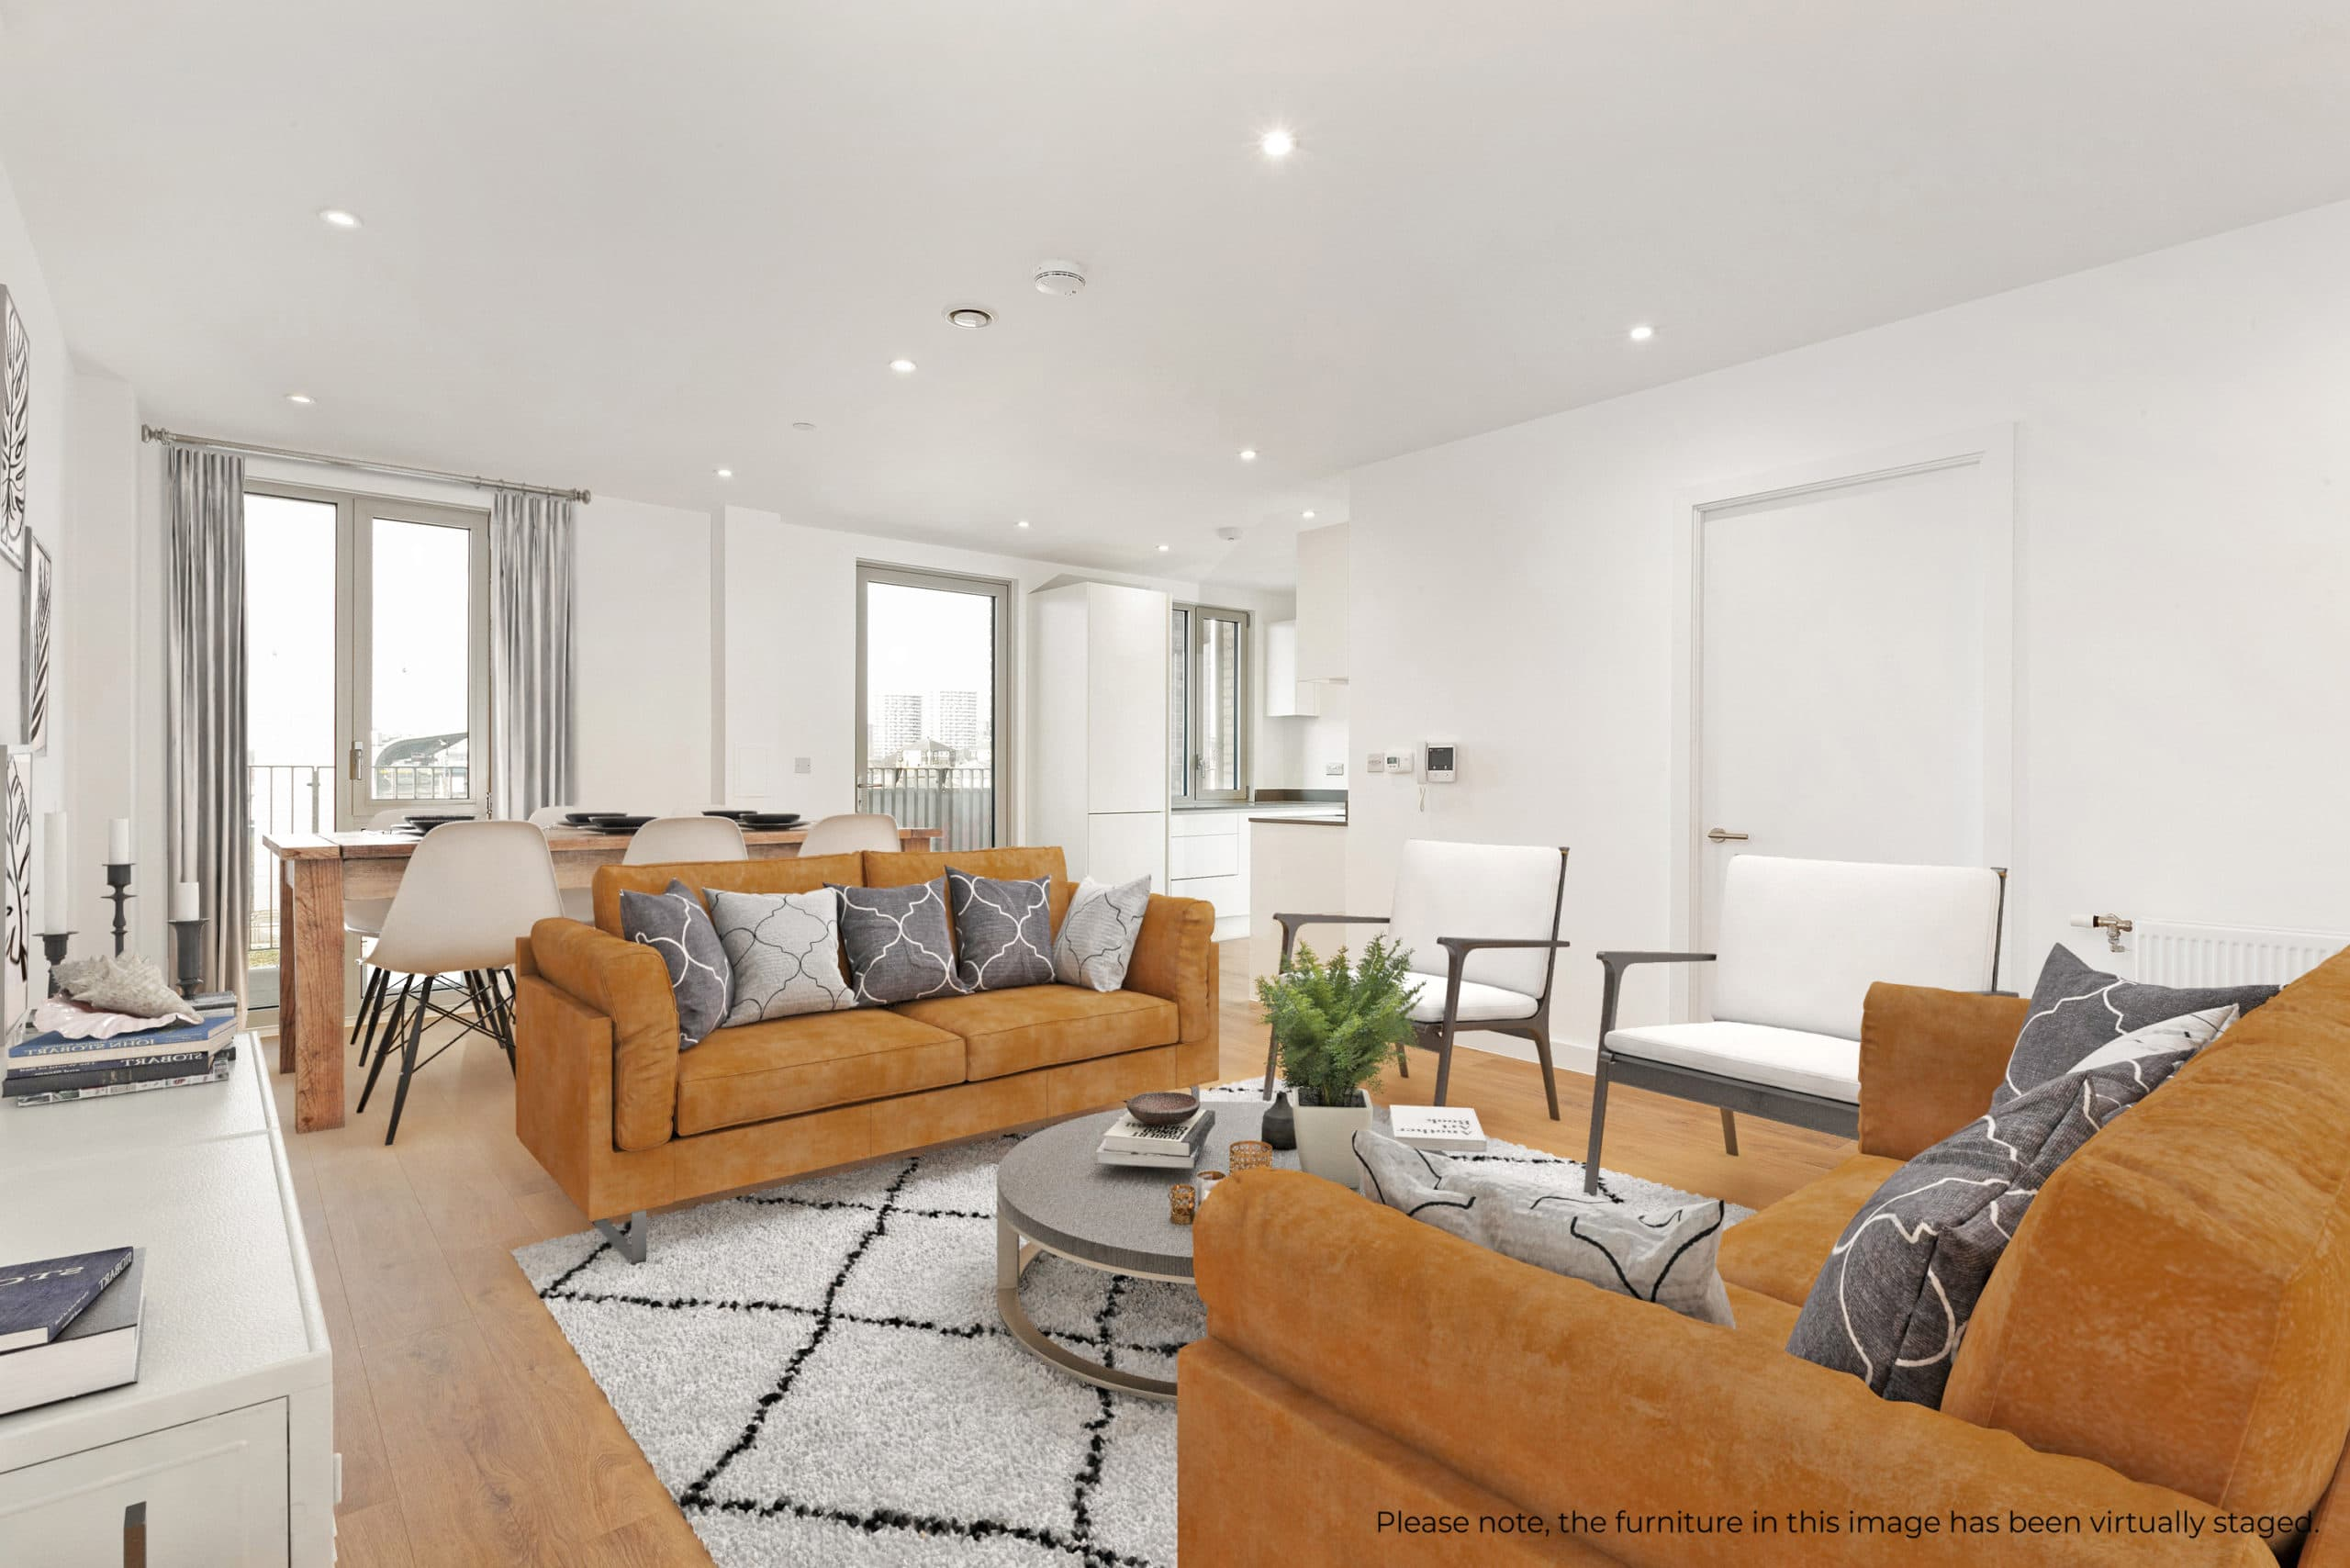 Internal show home photography of Southern Home Ownership's The Refinery - Shared Ownership homes available on Share to Buy